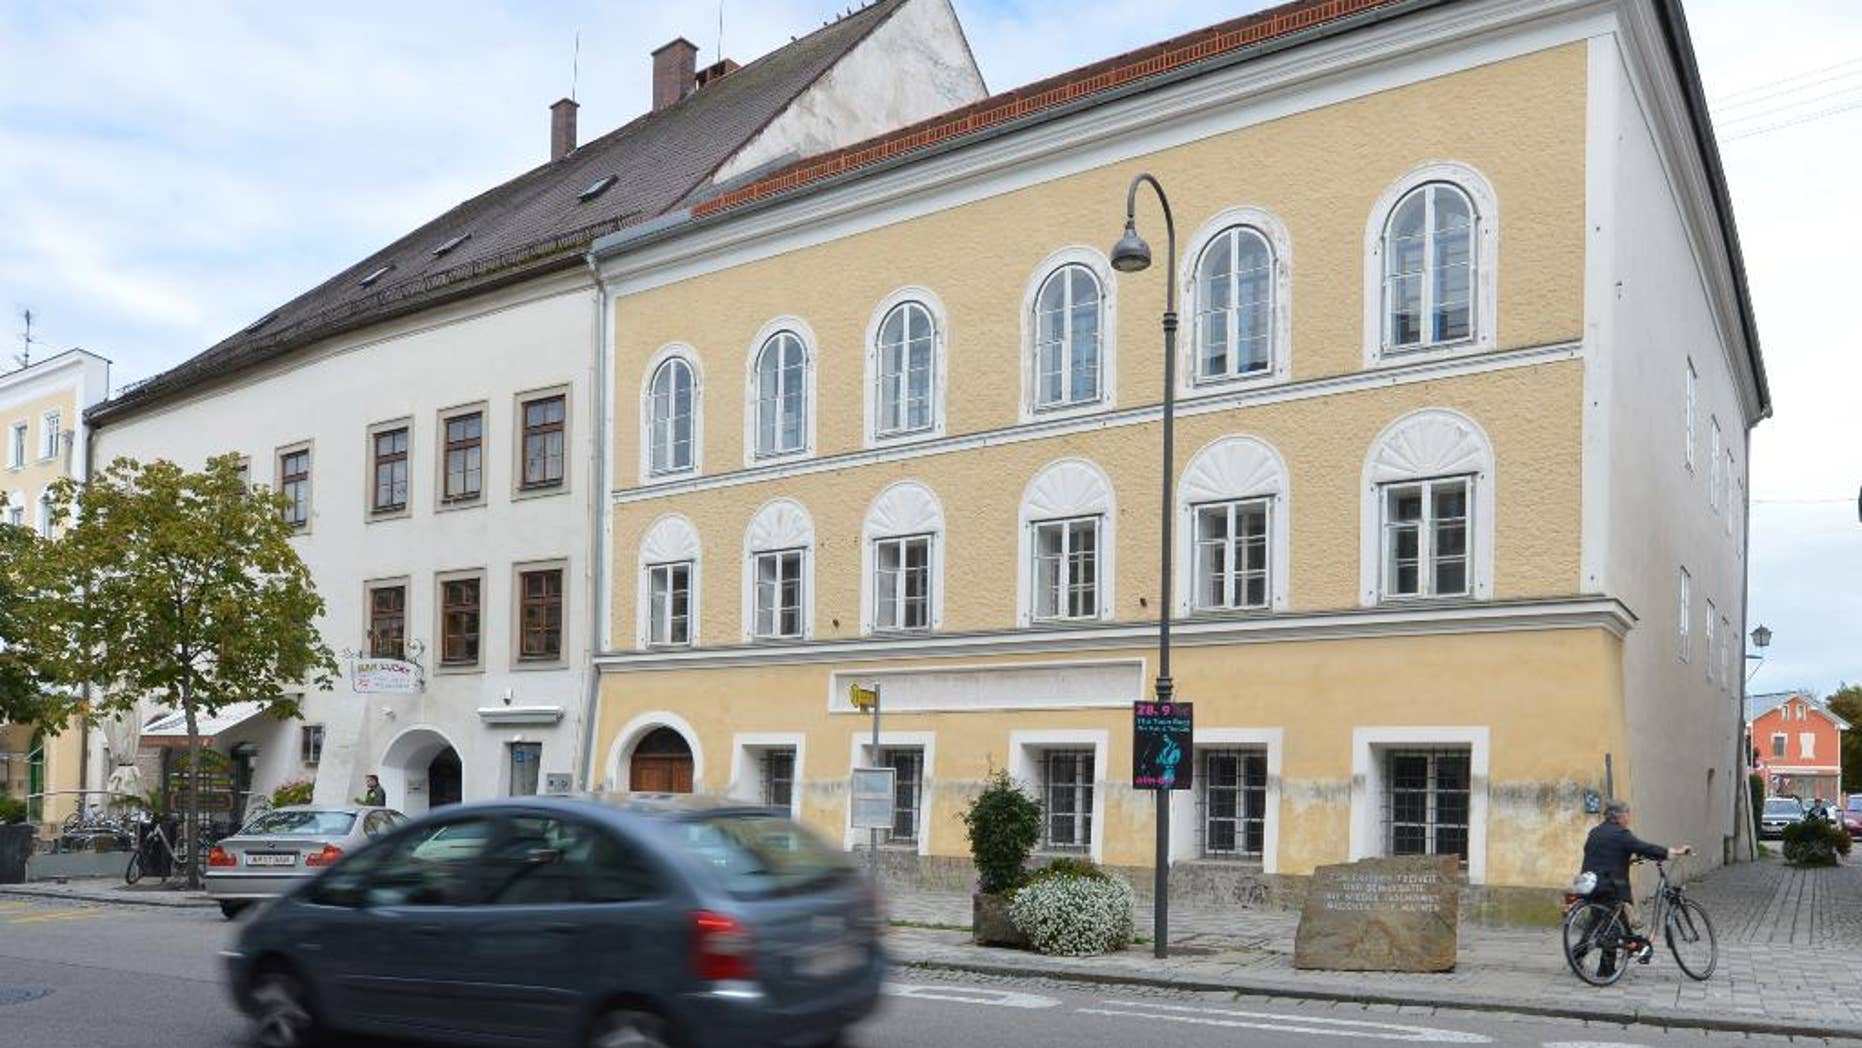 FILE - This Sept. 27, 2012 file picture shows an exterior view of Adolf Hitler's birth house , front, in Braunau am Inn, Austria.   Austria's Interior Ministry says the government has drawn up a draft law that would dispossess the owner of the house where Adolf Hitler was born. Tuesday's July 12, 2016  move follows steadfast refusal by house owner Gerlinde Pommer to sell the empty building in the town of Braunau am Inn on the German border. The government has sought ownership so it can take measures to lessen its attraction as a shrine for the Nazi dictator's admirers.  (AP Photo / Kerstin Joensson,file)